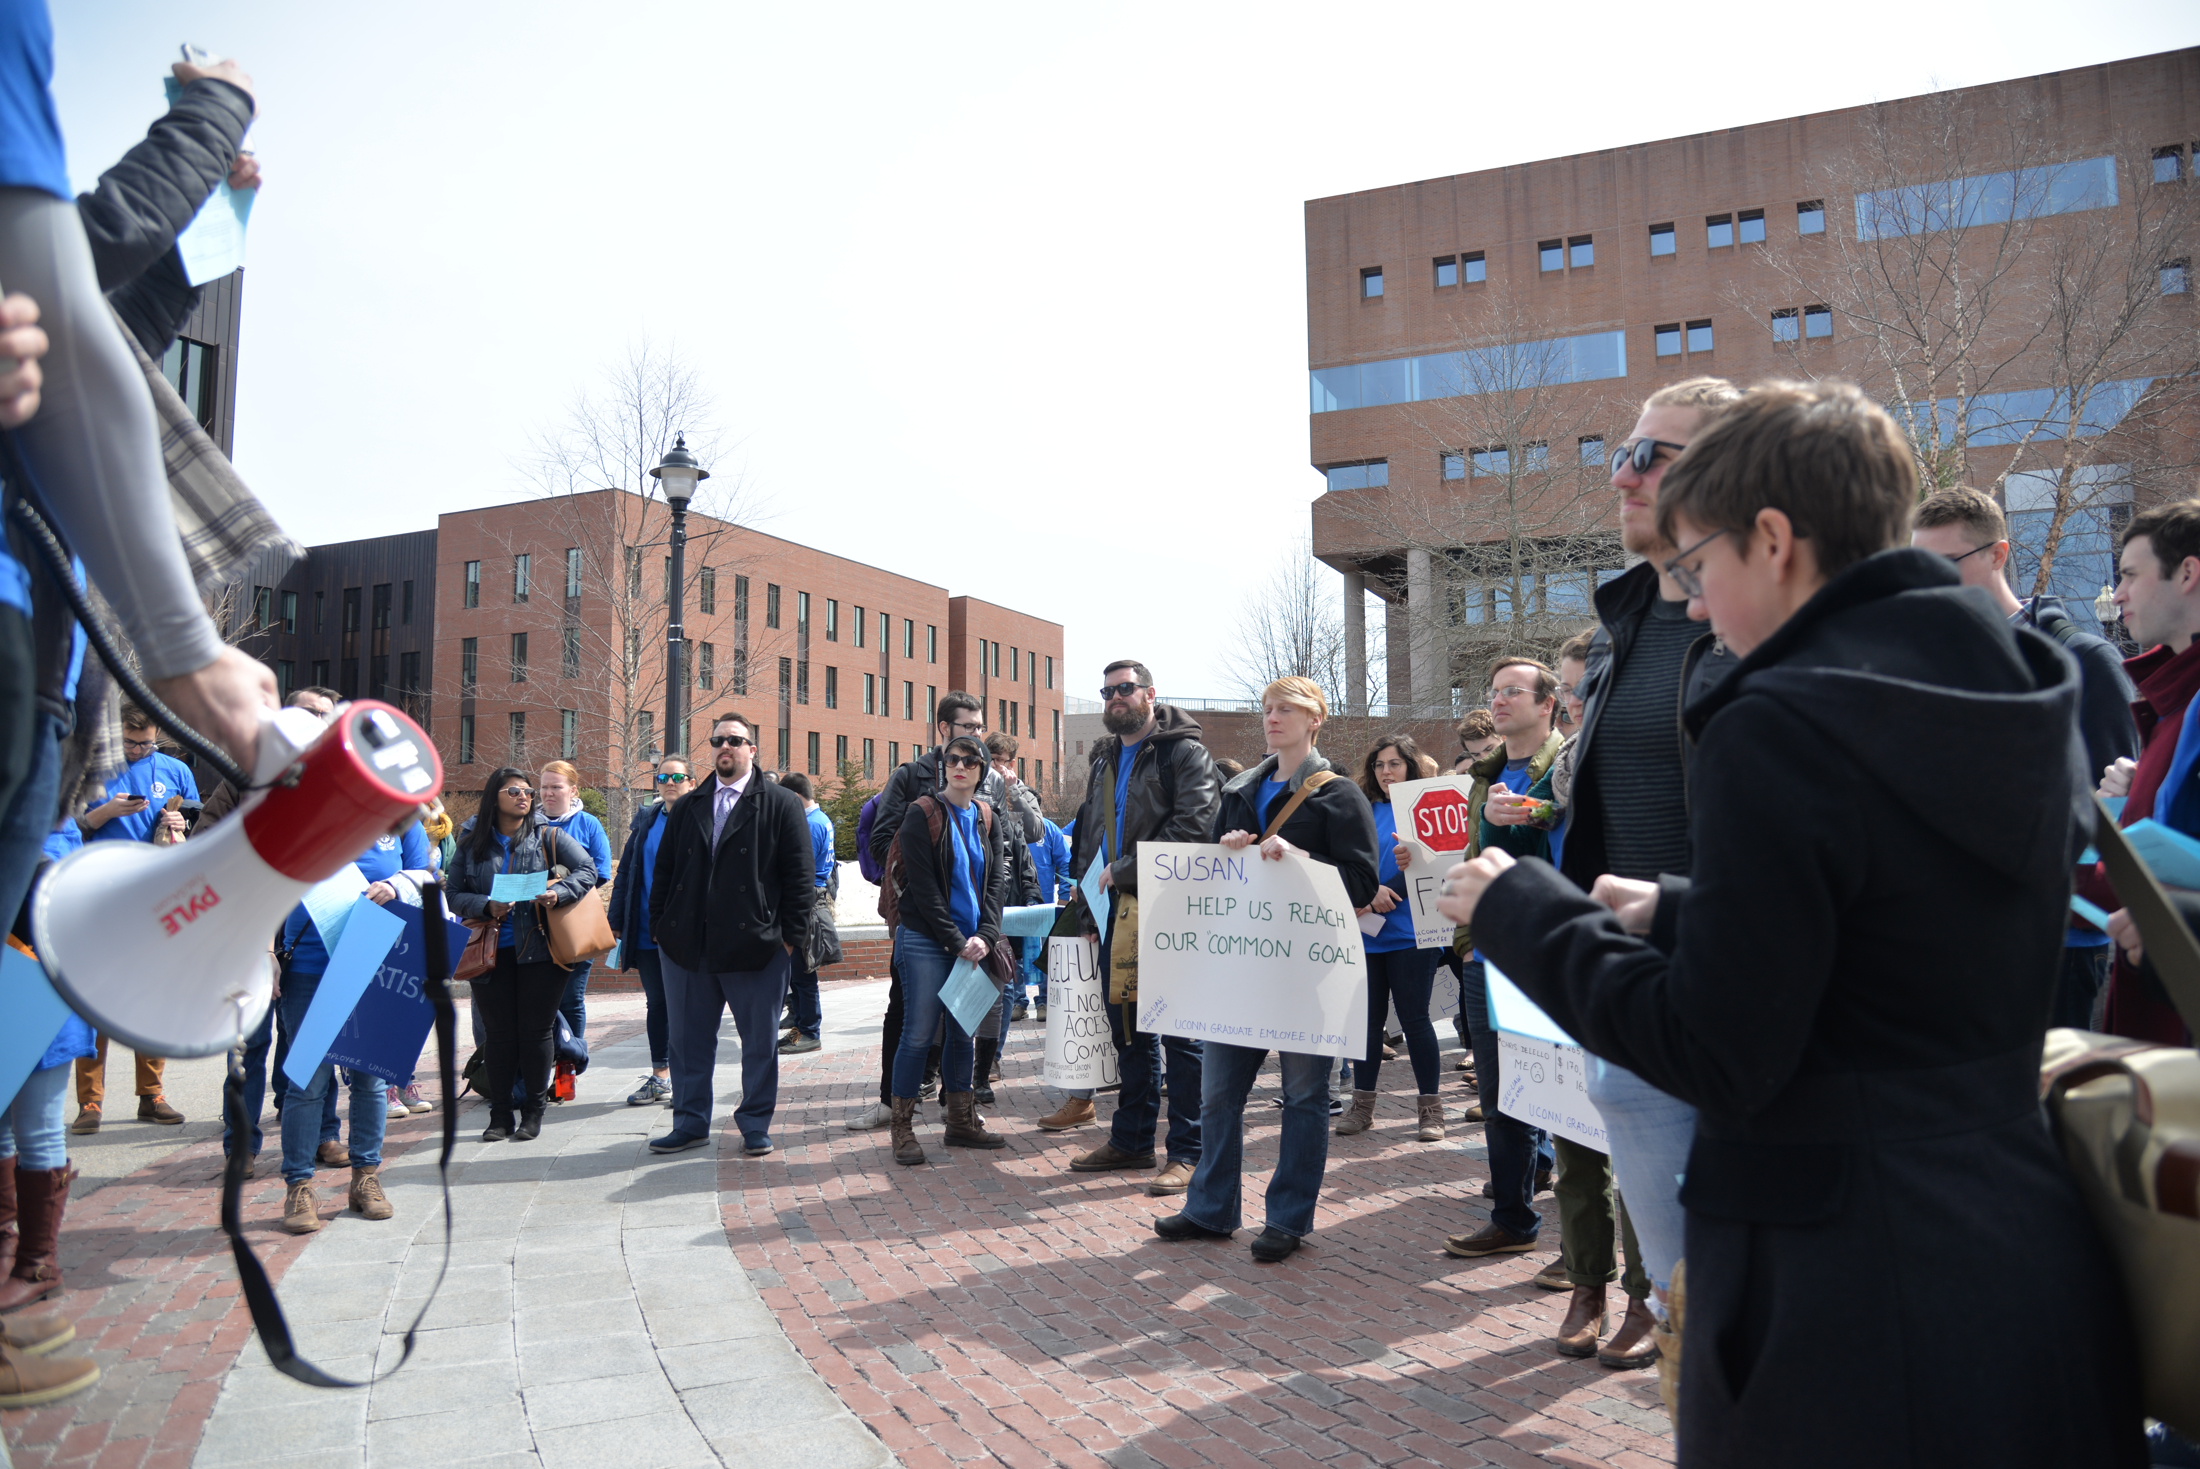 The University of Connecticut Graduate Employee Union (GEU) holds a rally and sits in on President Susan Herbst's office hours on Tuesday to protest additional bargaining time, equity and gender inclusivity and fee increases. (Amar Batra/The Daily Campus)